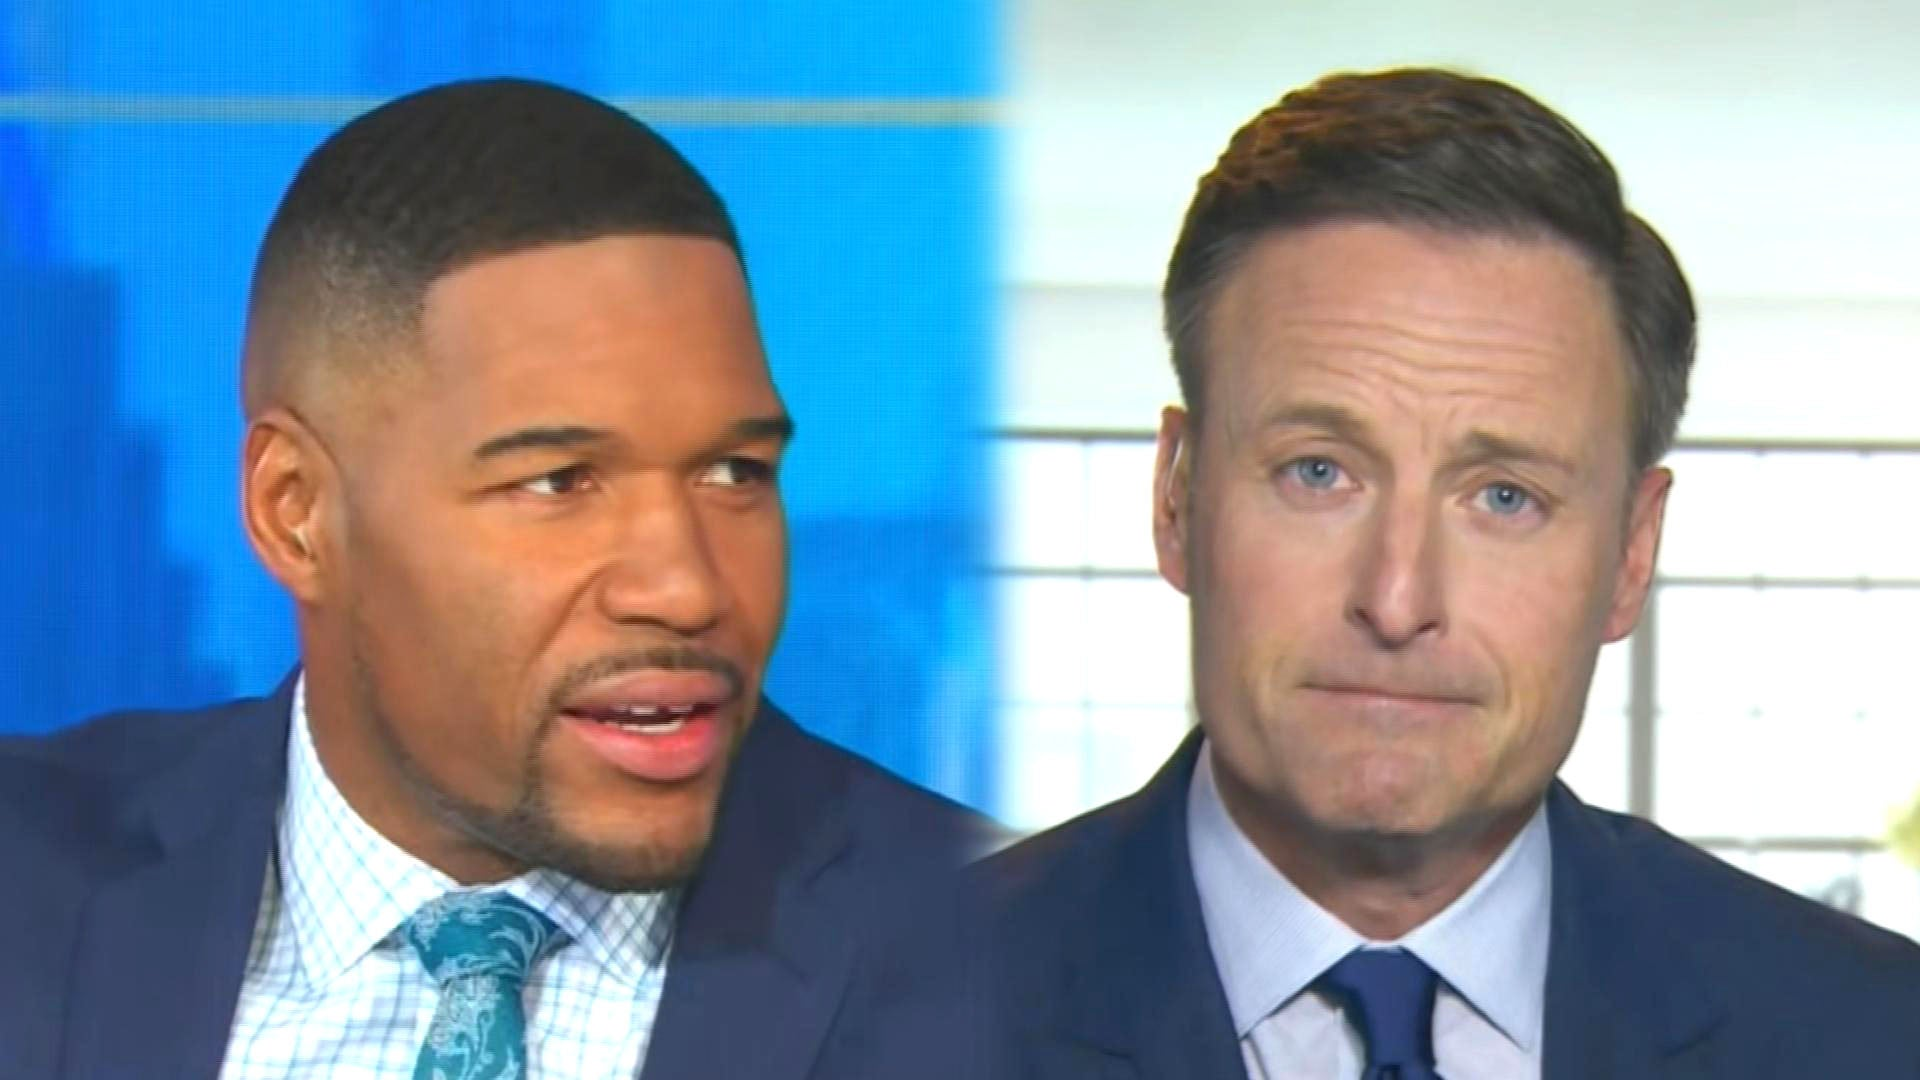 michael-strahan-gives-his-honest-thoughts-about-chris-harrison-after-gma-interview